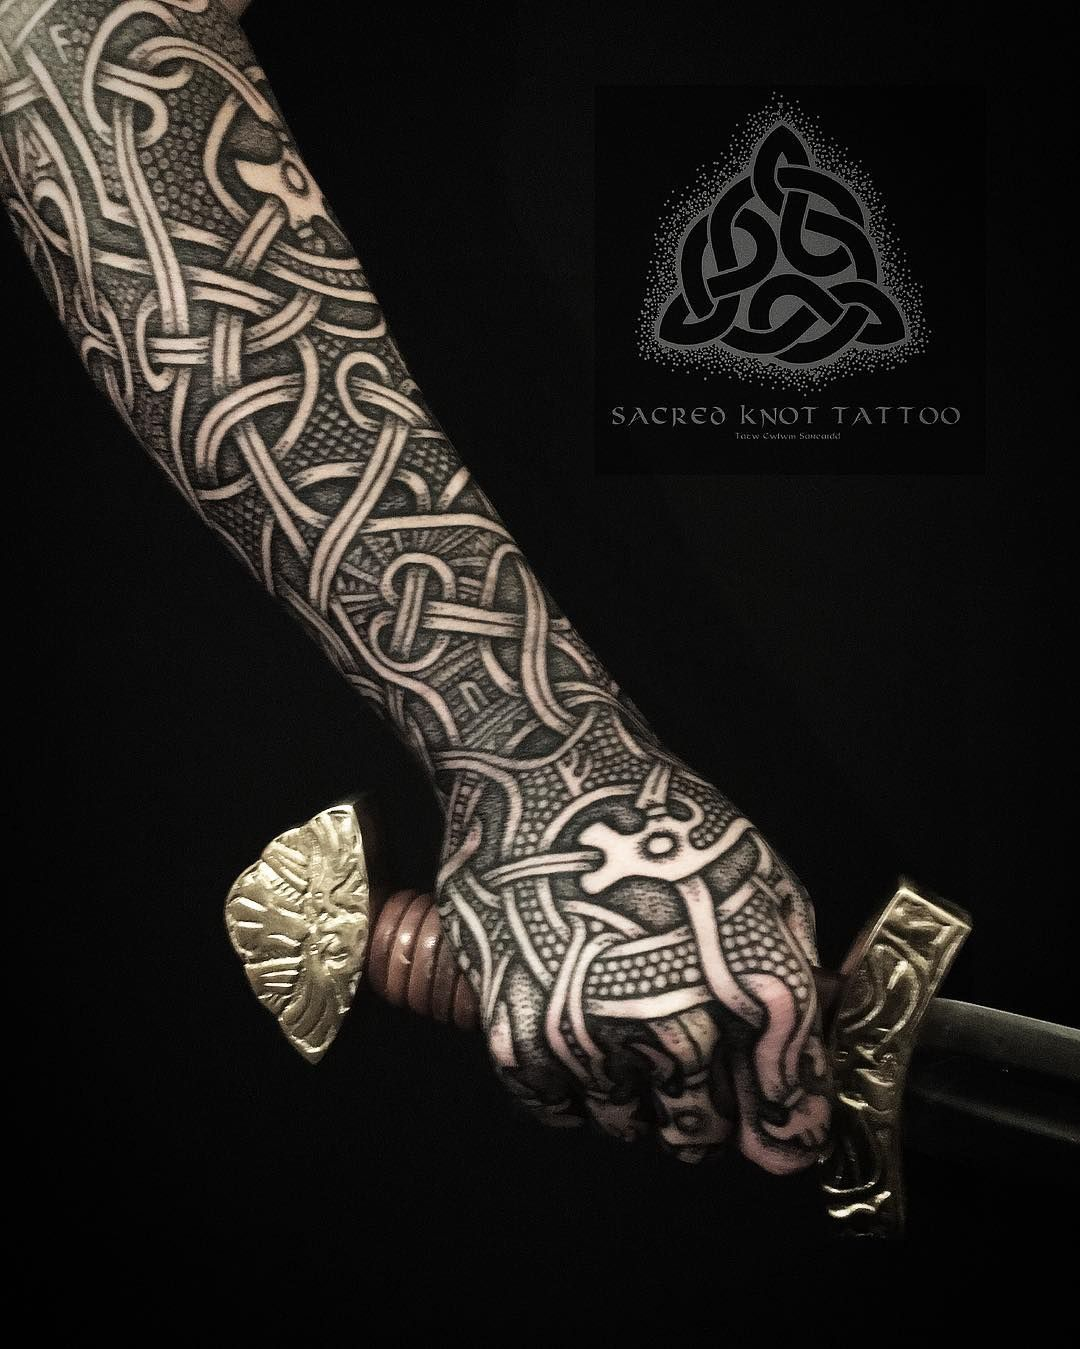 1,713 Likes, 32 Comments Sean Parry (sacred_knot_tattoo